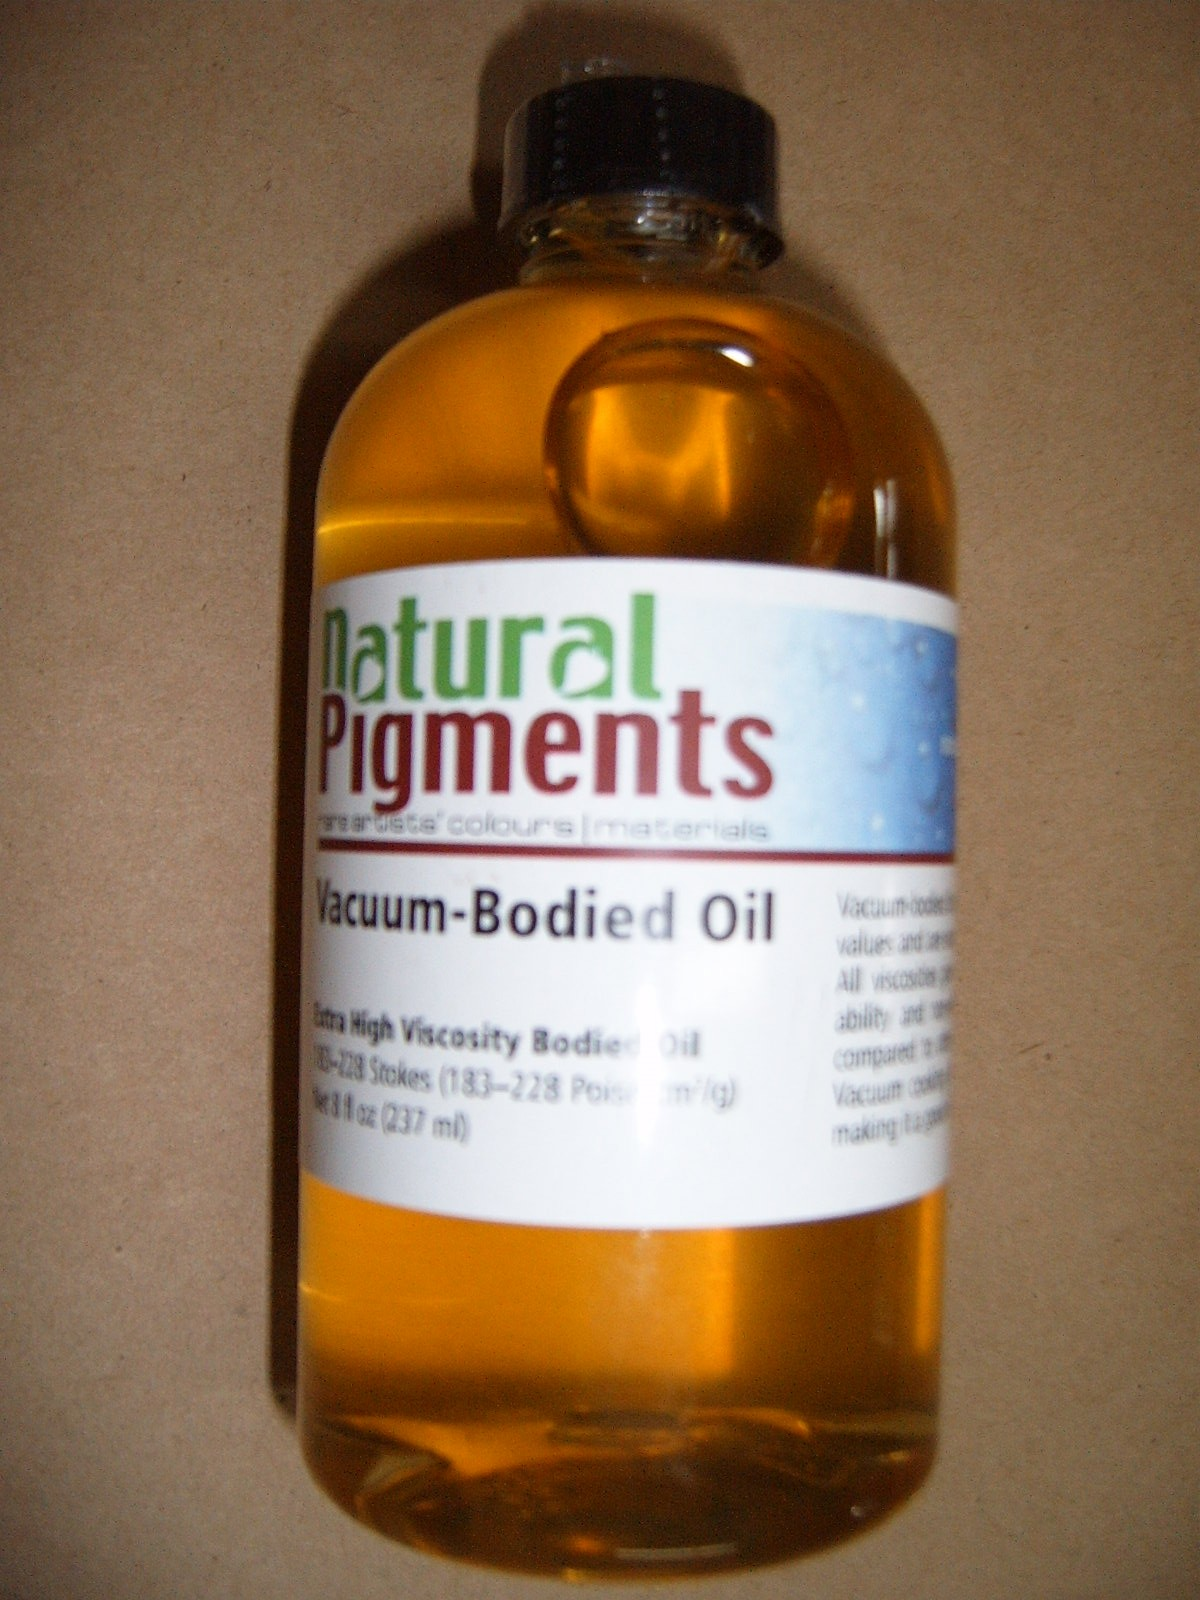 Natural Pigments Vacuum Bodied Linseed Oil